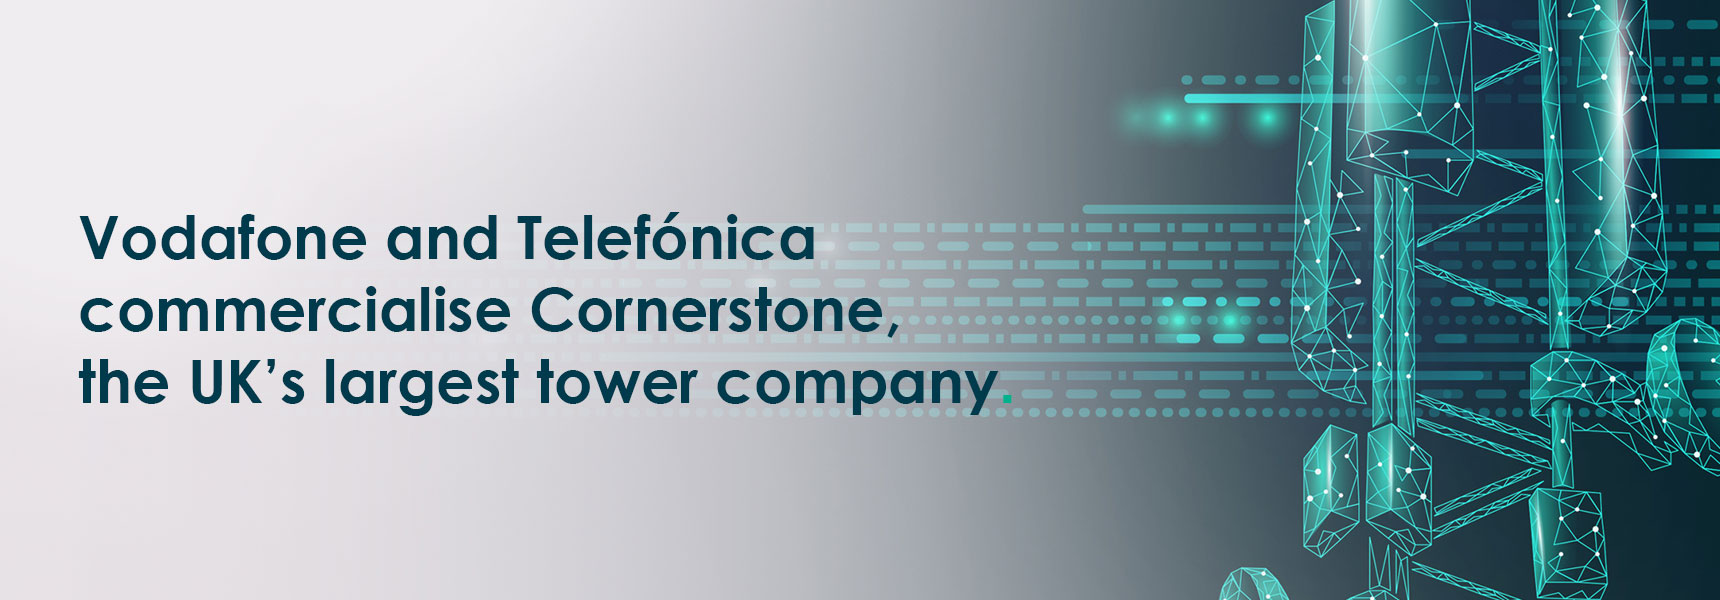 Vodafone and Telefónica commercialise Cornerstone, the UK's largest tower company